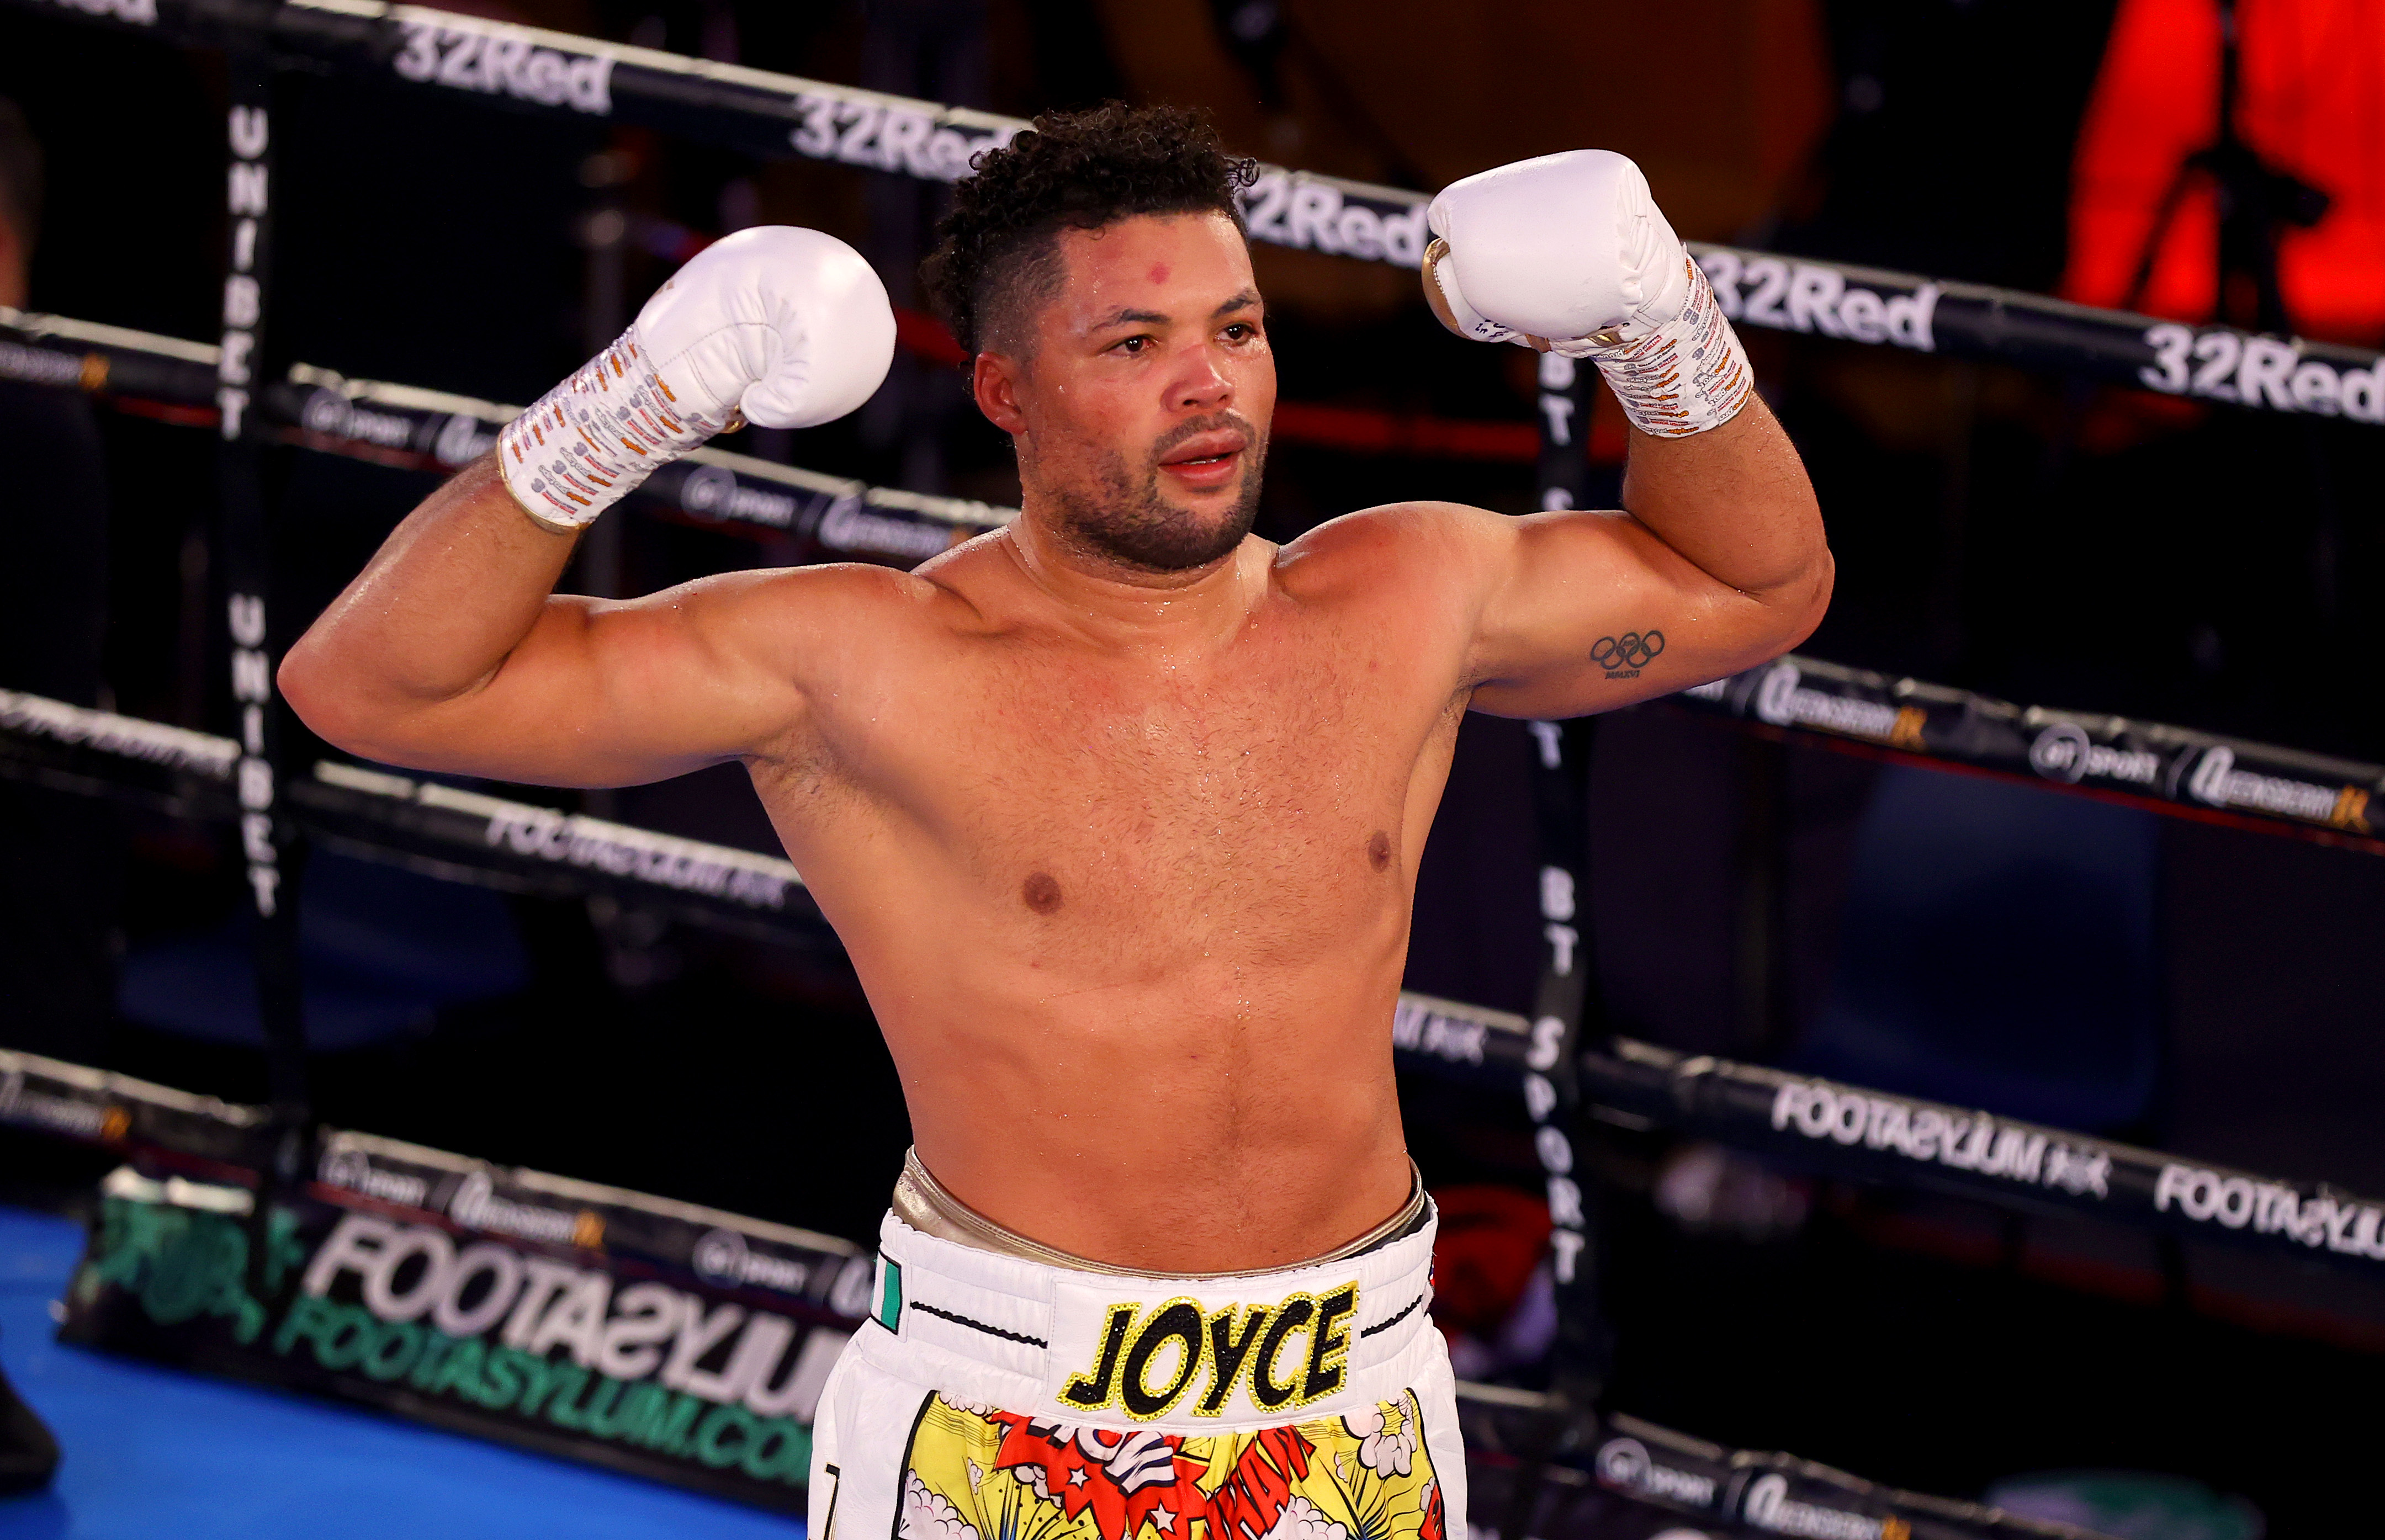 Joe Joyce celebrates victory over Daniel Dubois (not pictured) after the WBC Silver heavyweight title, British, Commonwealth and European Heavyweight title fight between Daniel Dubois and Joe Joyce at The Church House on November 28, 2020 in London, England.